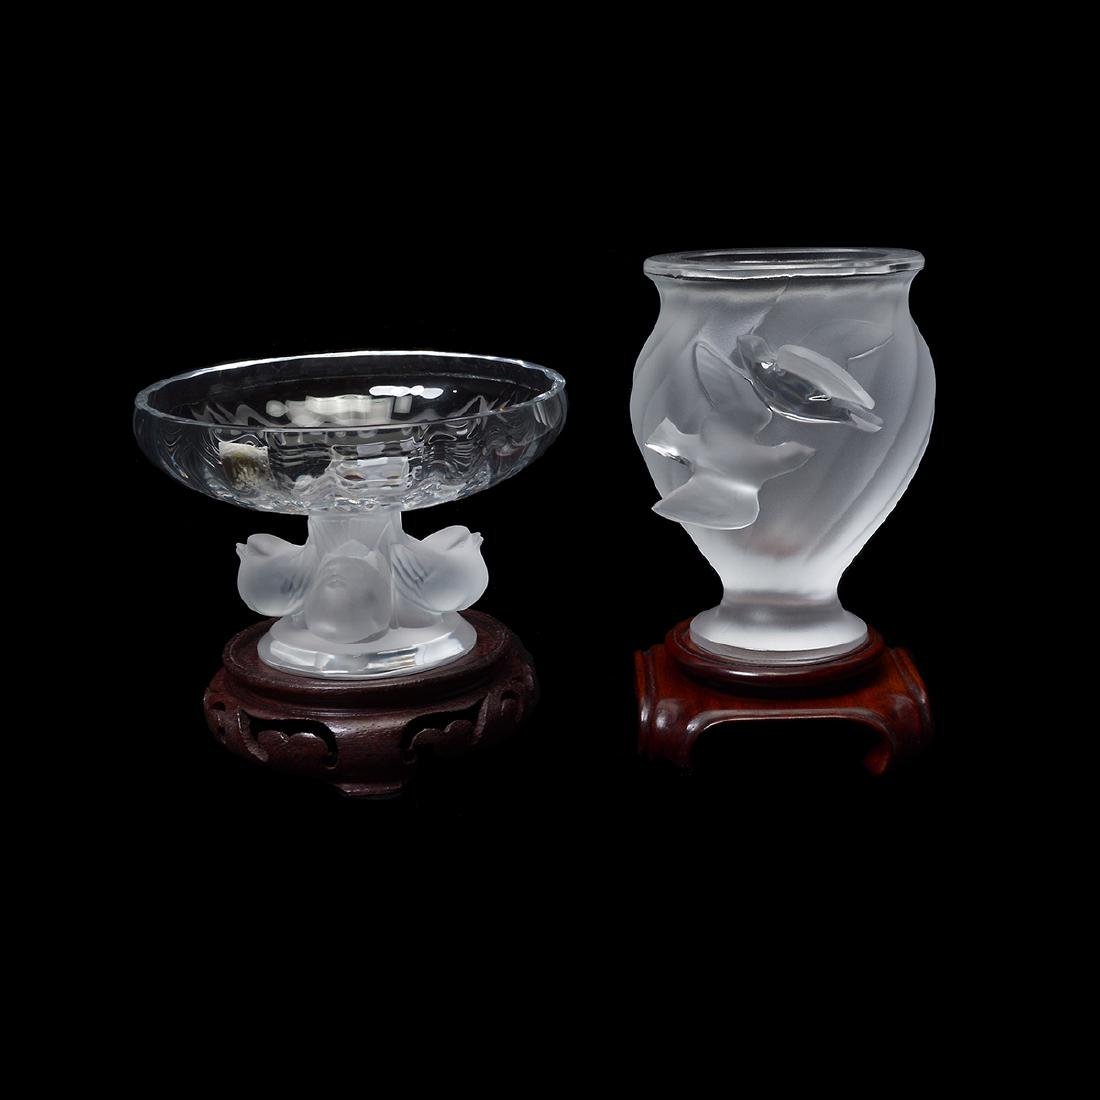 Two Lalique Vases: Rosine and Nogent